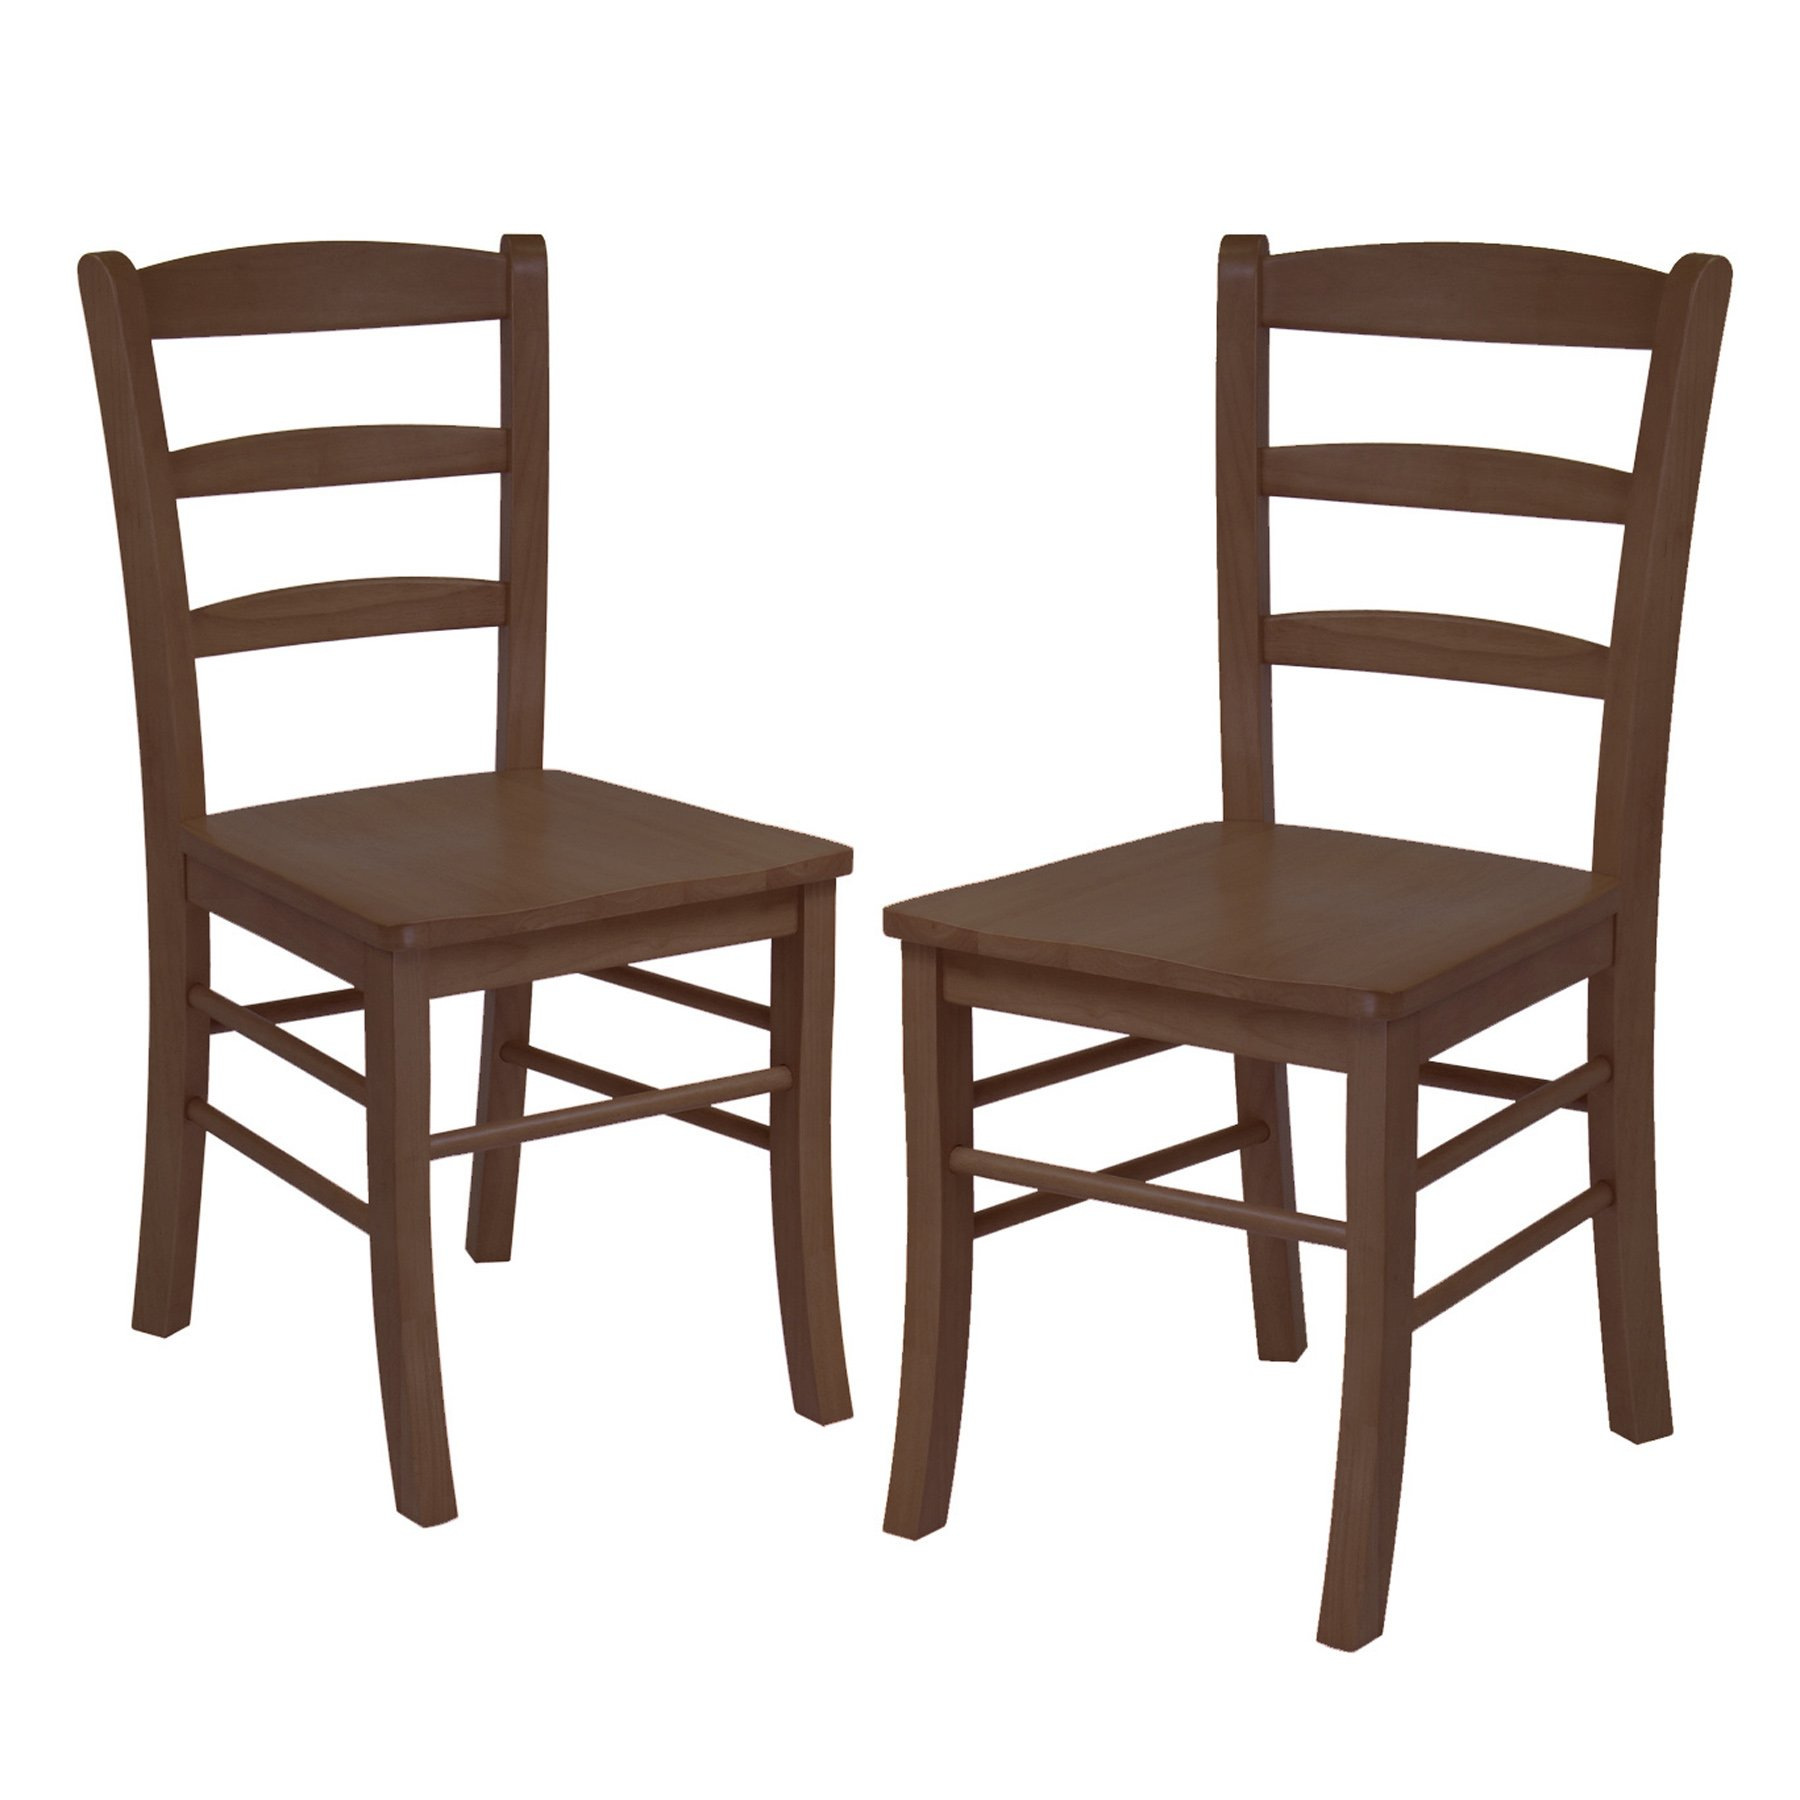 Winsome Wood Ladder Back Chair, RTA, Antique Walnut, Set of 2